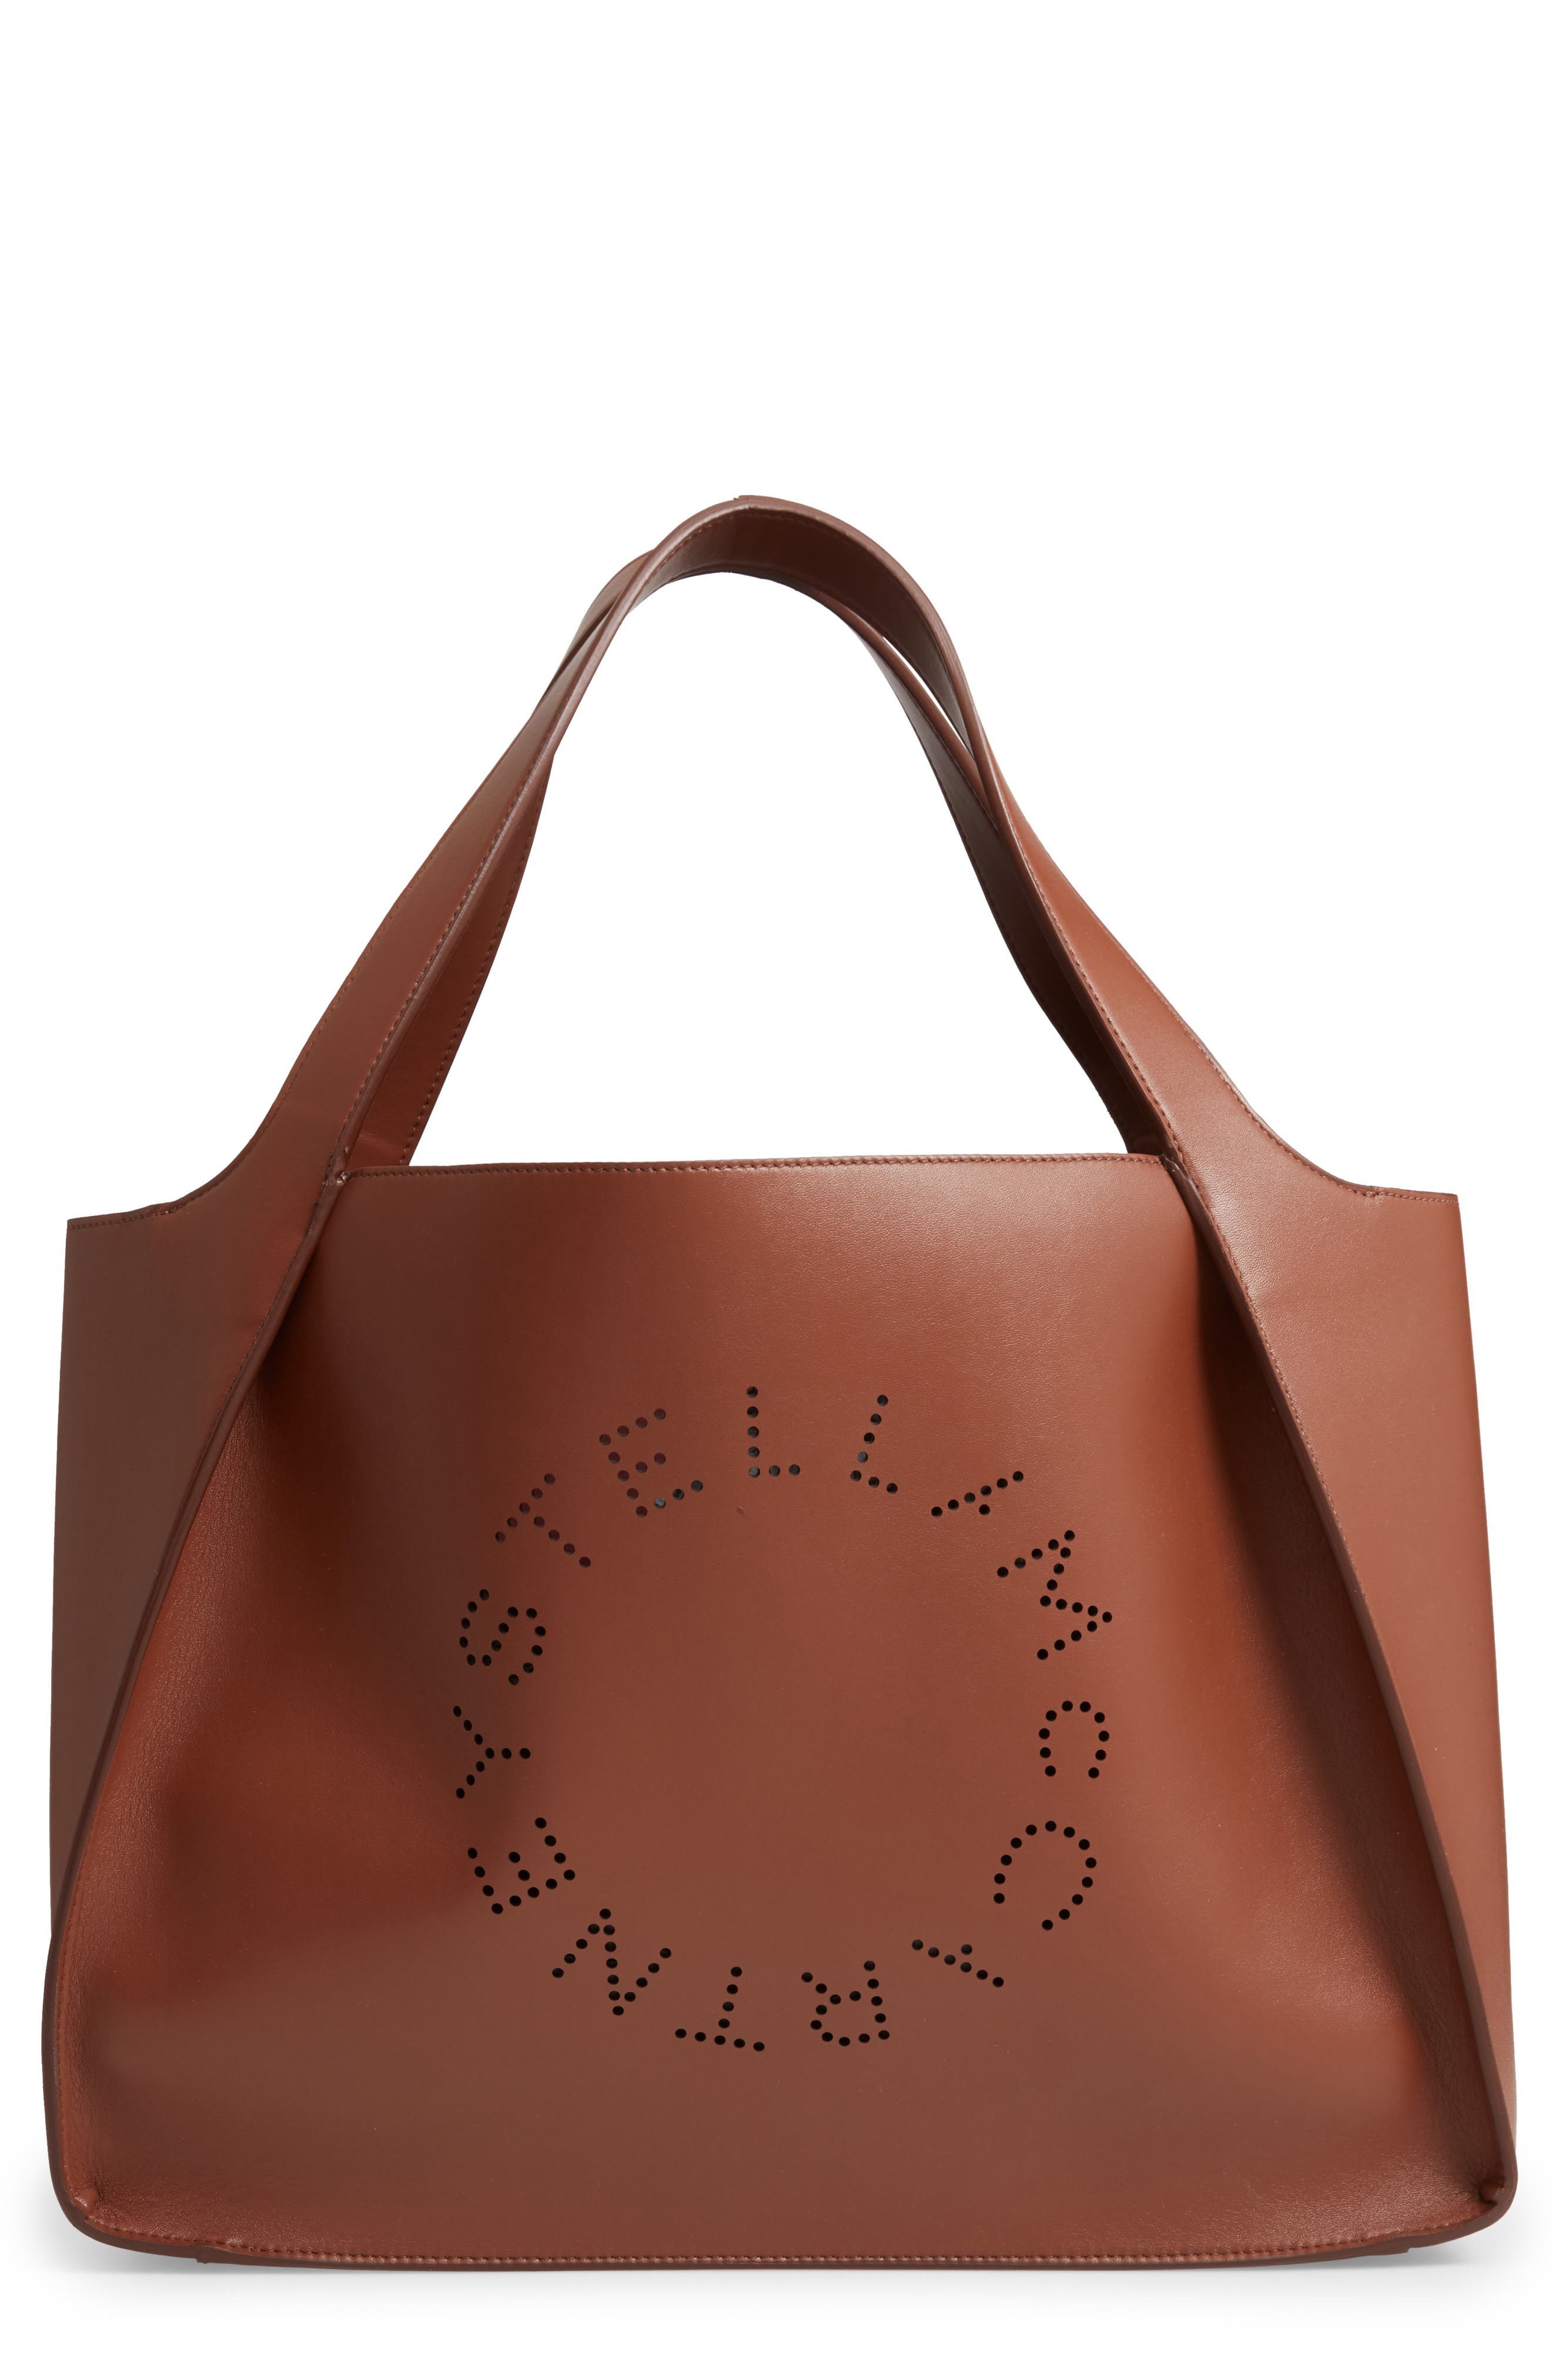 Stella Mccartney Medium Perforated Logo Faux Leather Tote - Brown